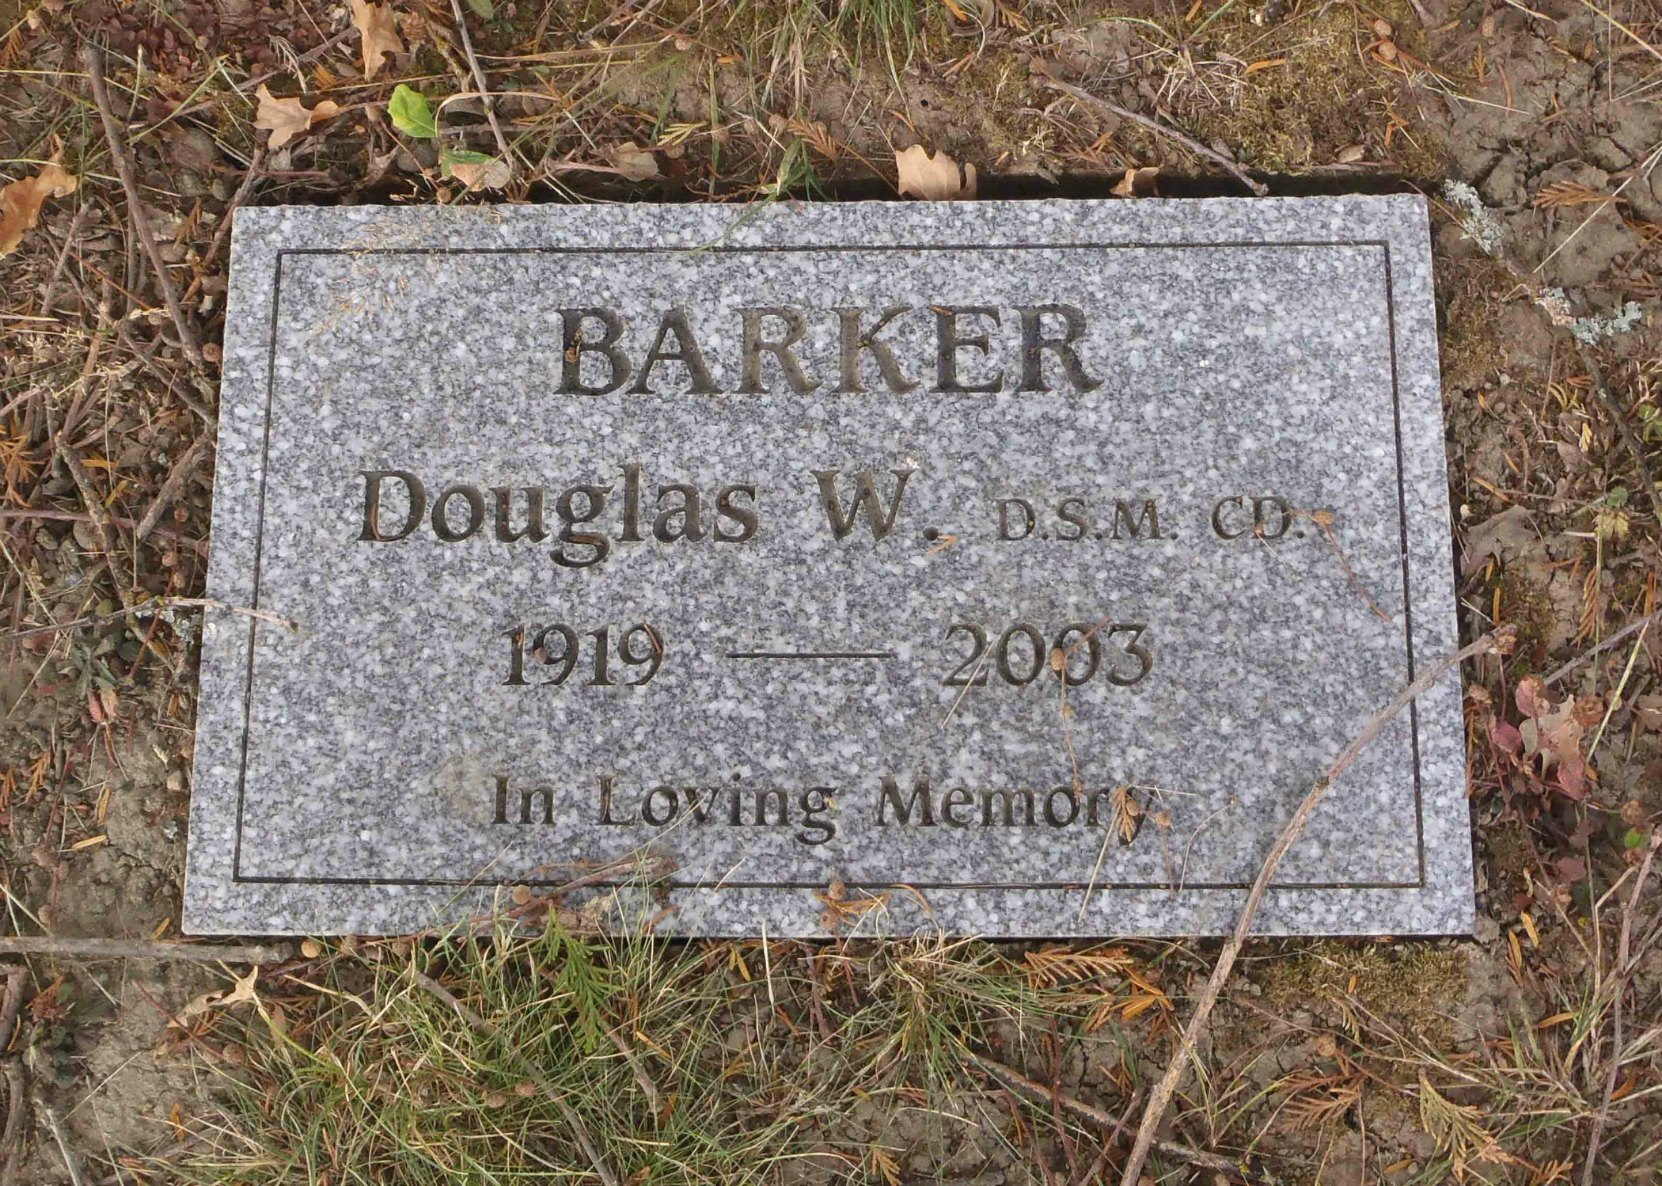 Douglas Barker grave marker, St. Mary's Somenos Anglican cemetery, North Cowichan.